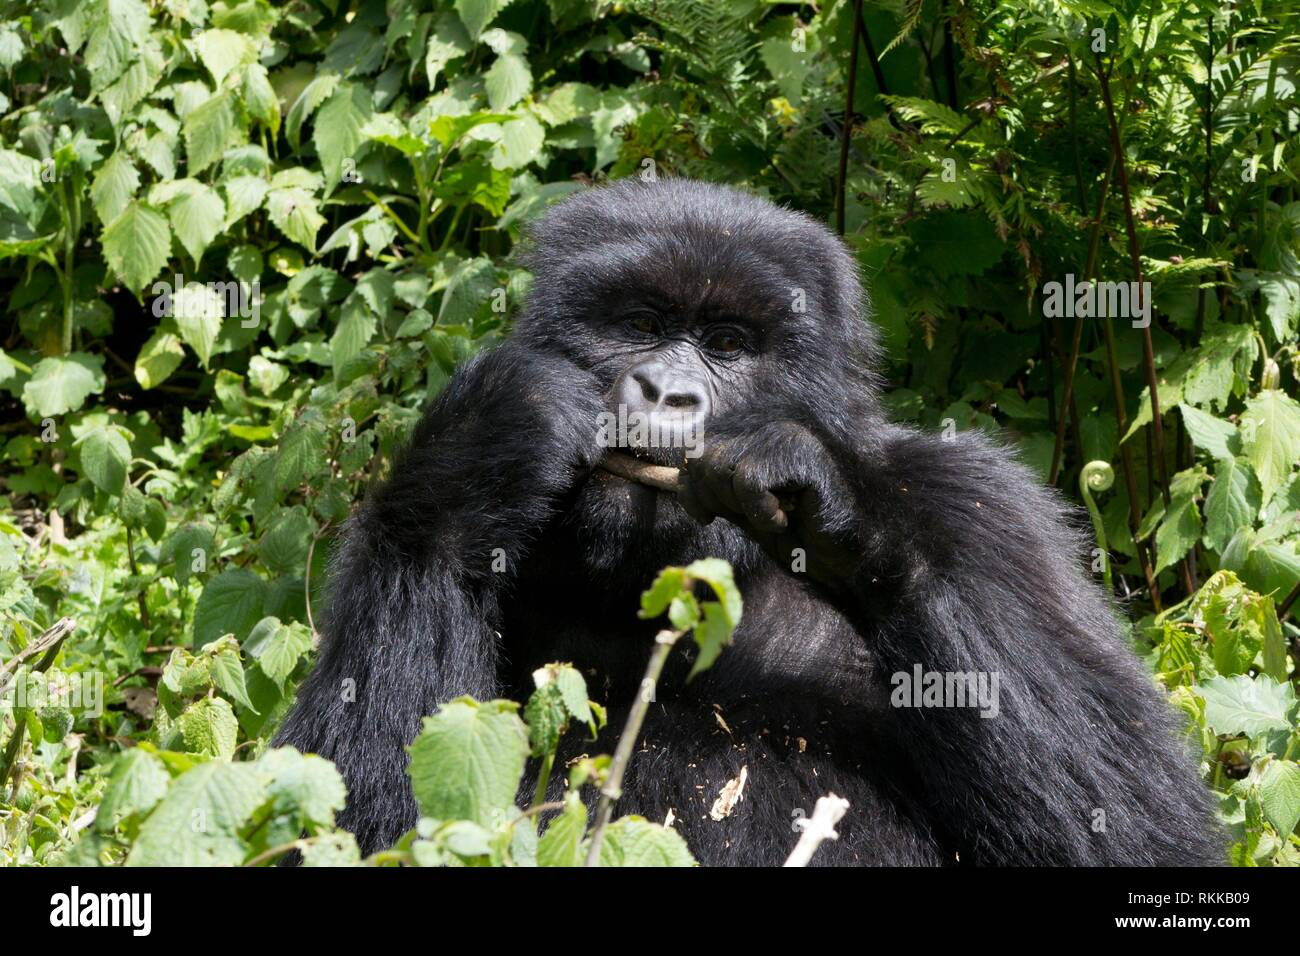 Young Gorilla feeding in the wild, Virunga National Park, Rwanda. - Stock Image